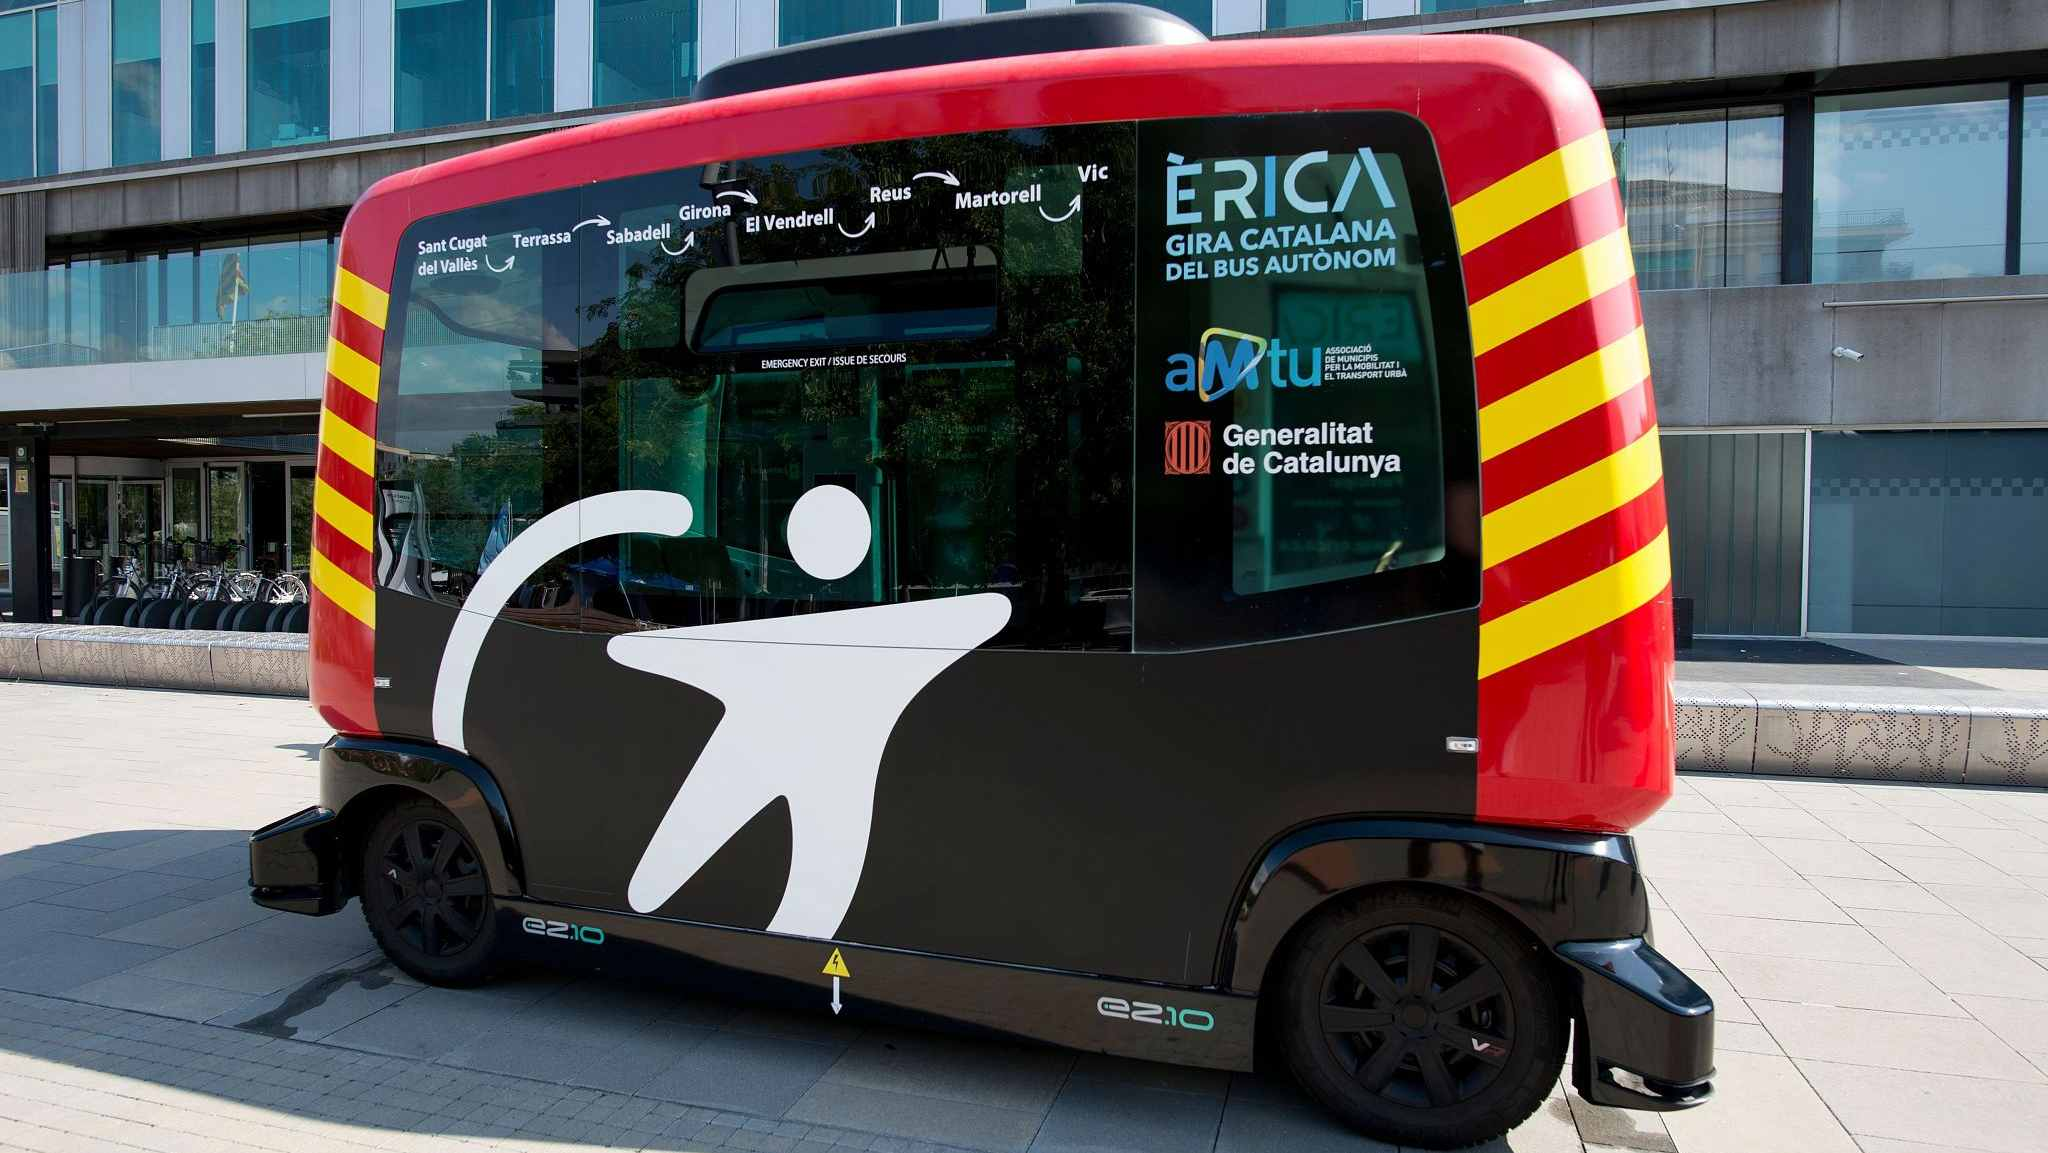 'Erica', driverless bus goes on road test in Catalonia, Spain